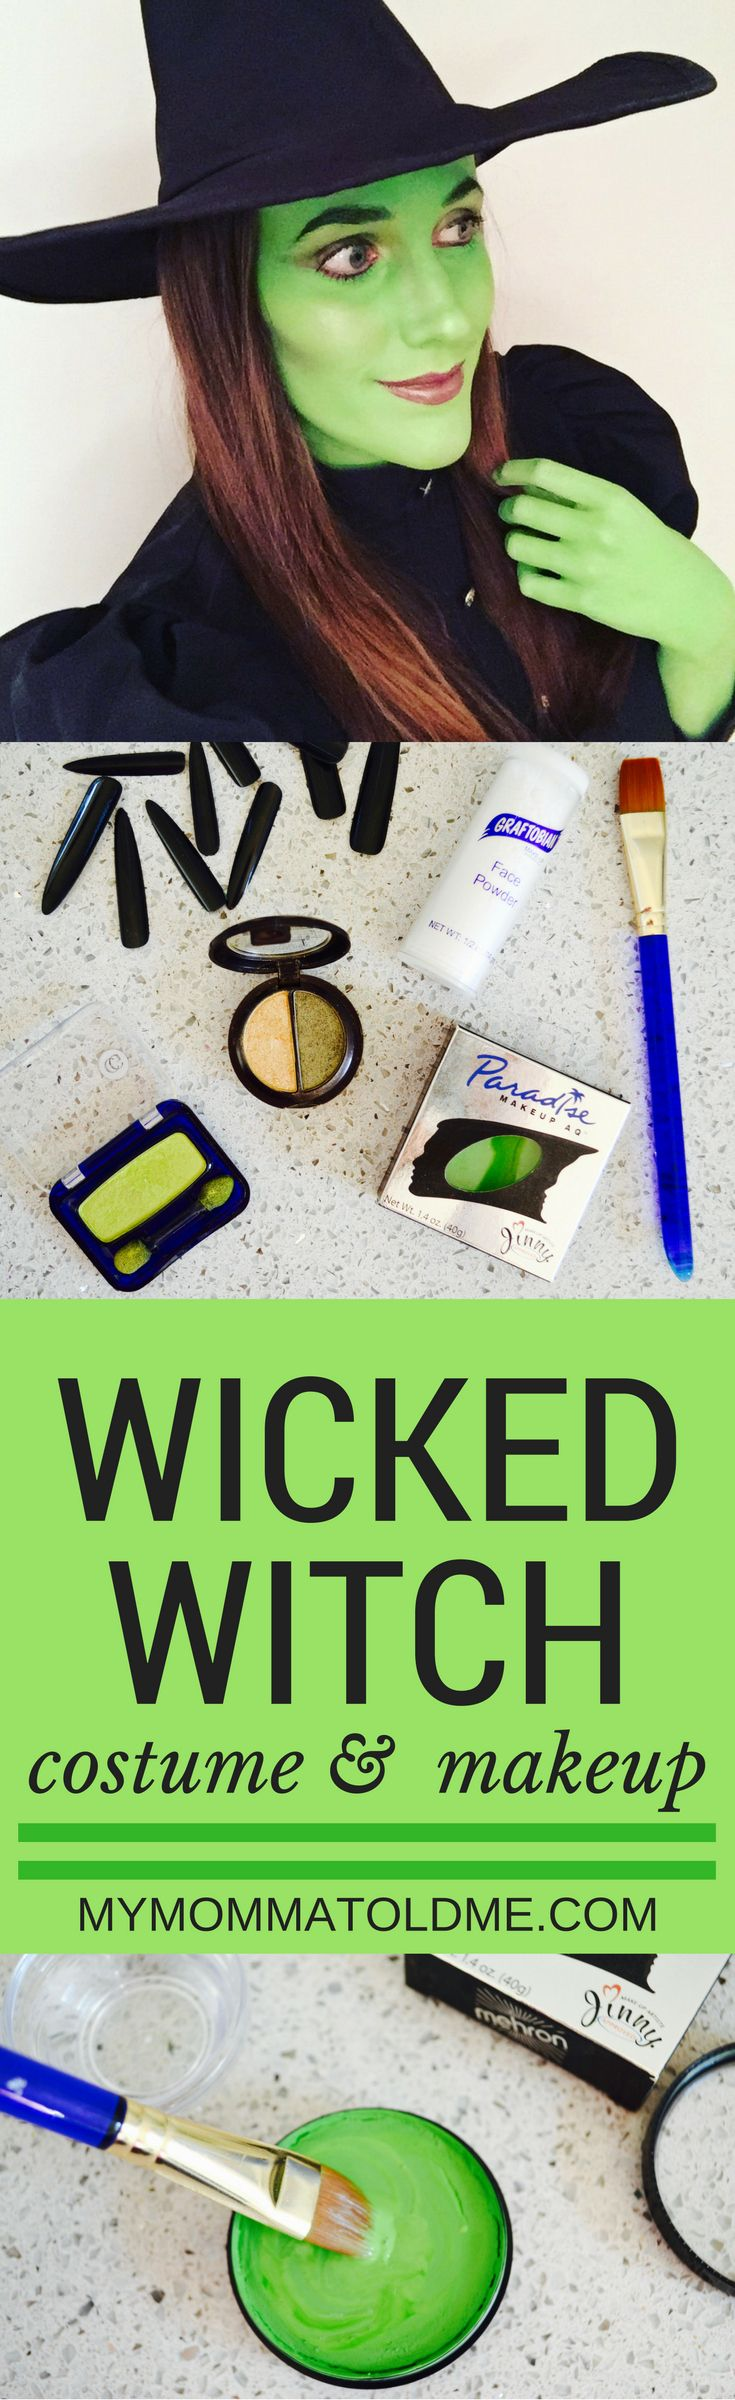 Wicked Witch of the west costume and makeup guide.  Find out the best costume to buy, make up supplies and learn how to paint yourself green!  Easy face contouring with eye shadow.  Everything you need to be the best green wicked witch or Elphaba halloween costume from Wicked!